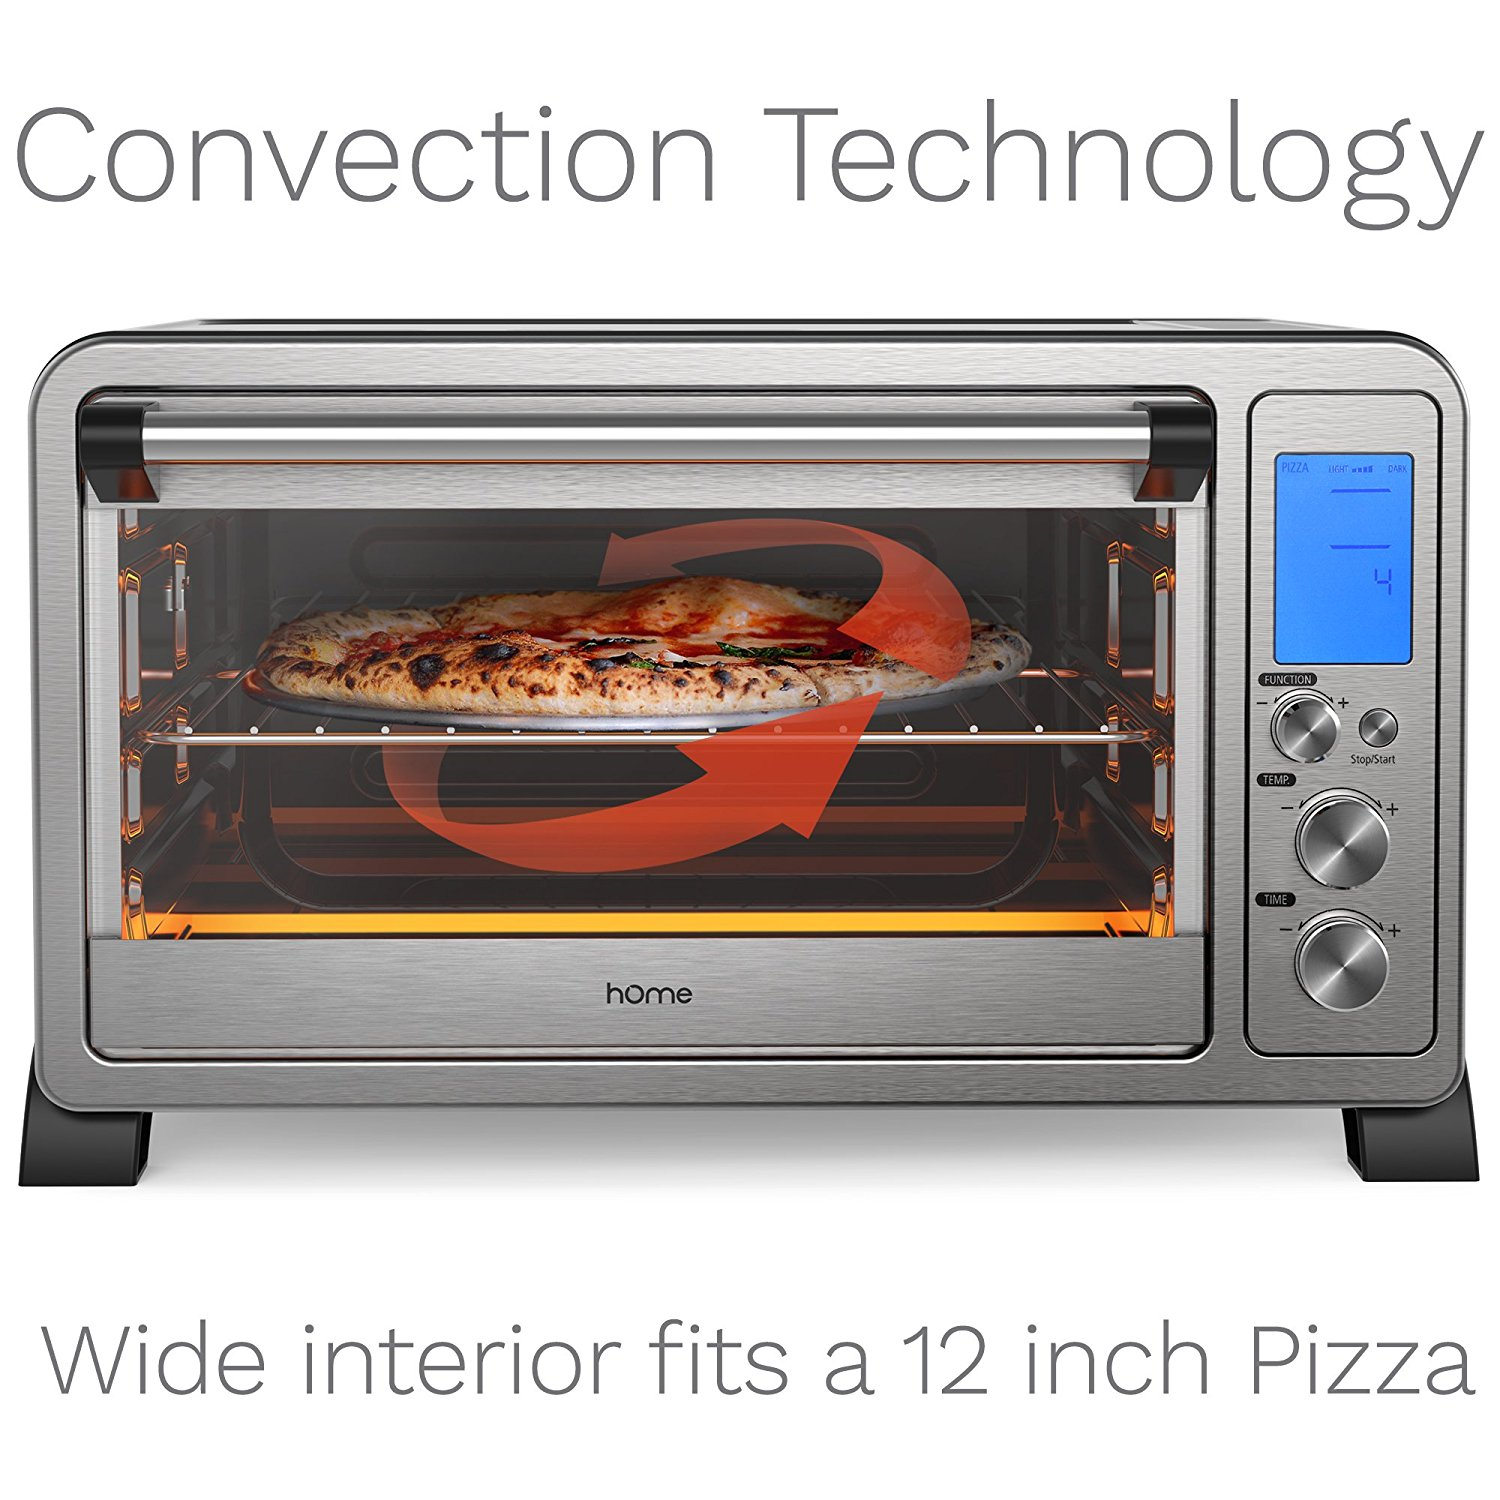 Countertop Pizza Oven Reviews Homelabs 6 Slice Convection Toaster Oven Stainless Steel